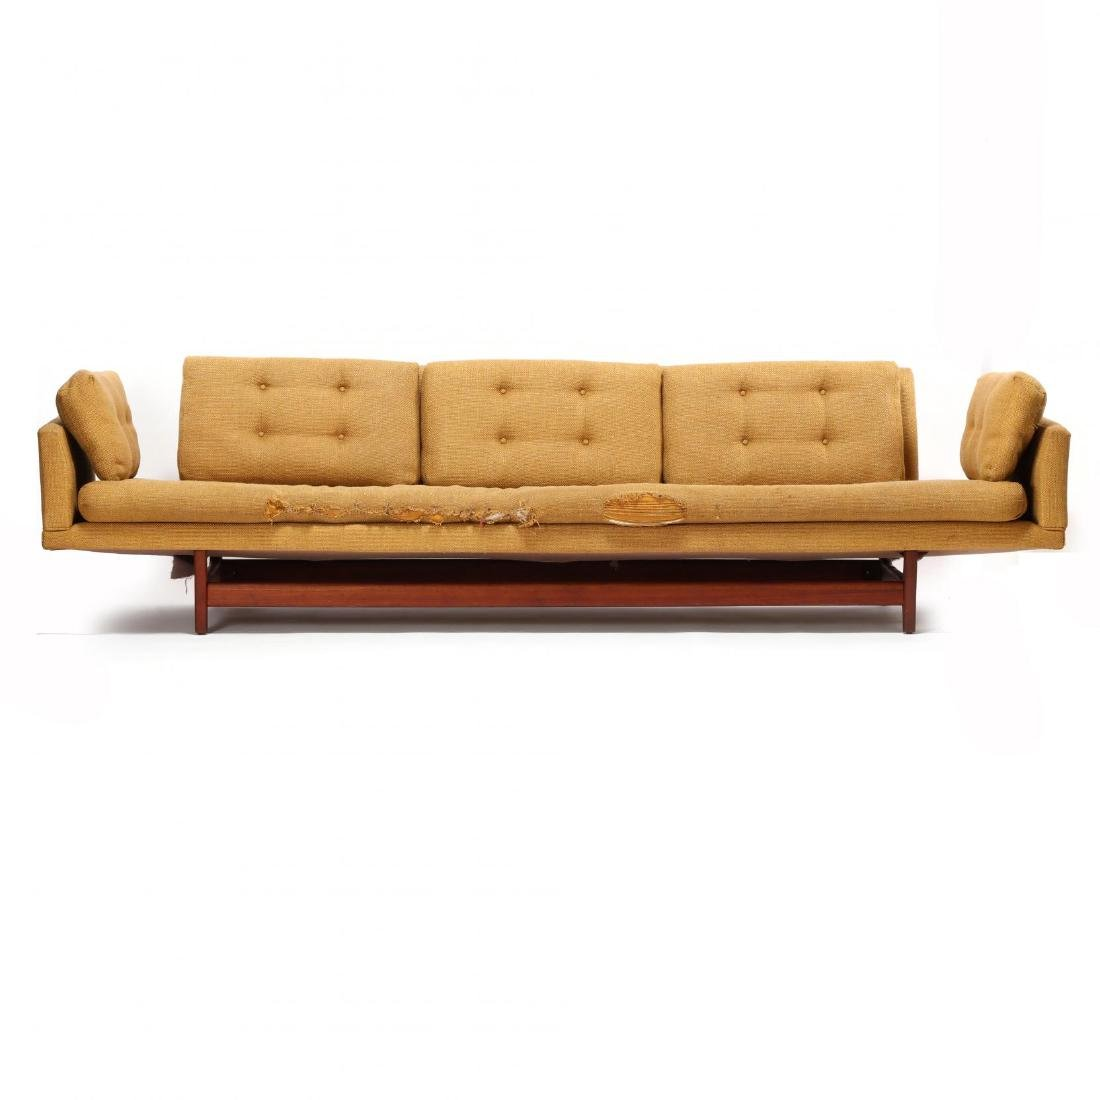 Adrian Persall, Streamlined Modernist Sofa